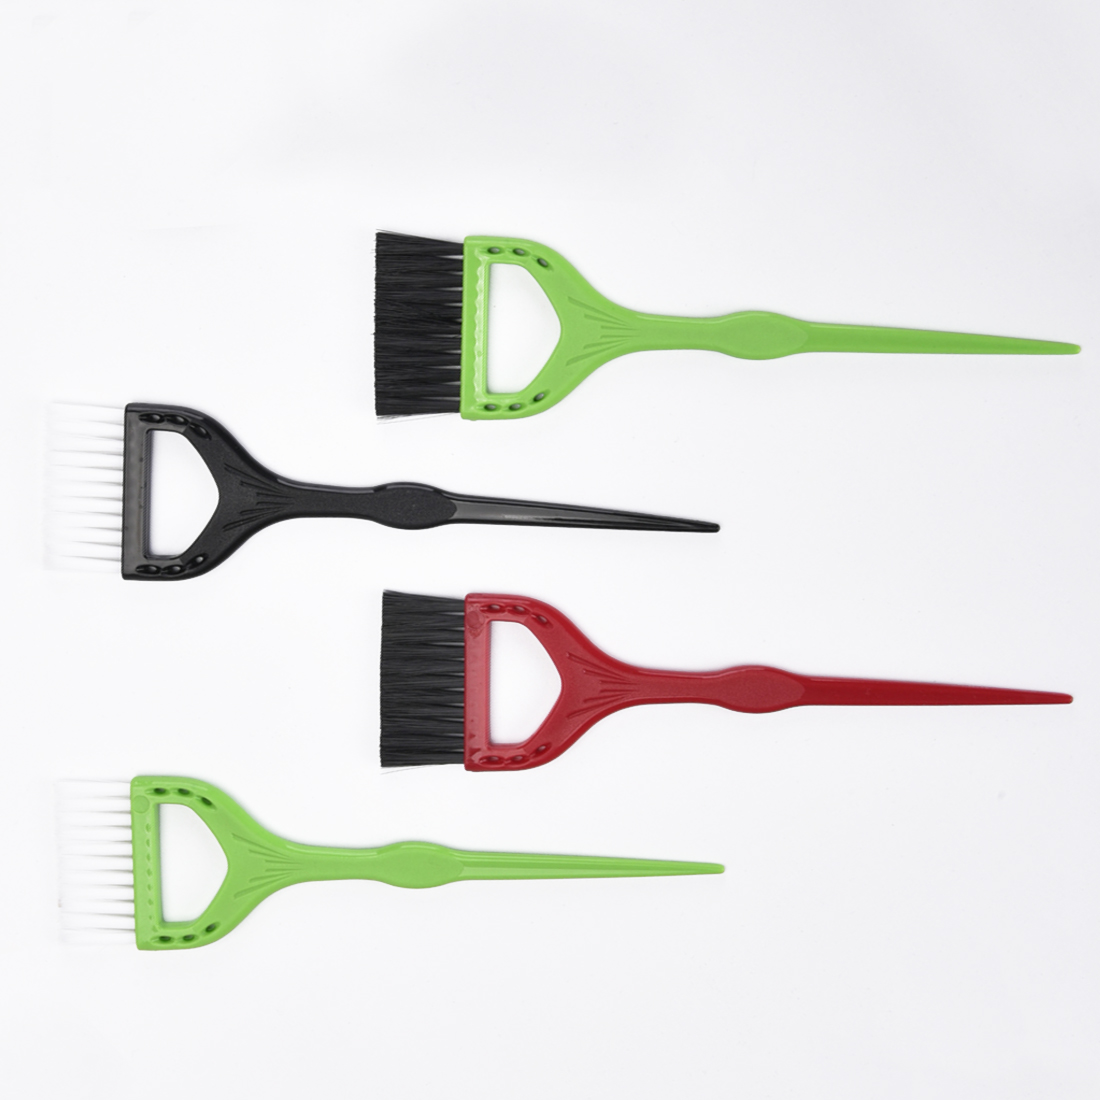 Coloring DIY Hairdressing Tool Combs  Plastic Hair Brushes Application Hall Hue Perm Lye Dye Comb Tools Dyeing Hall